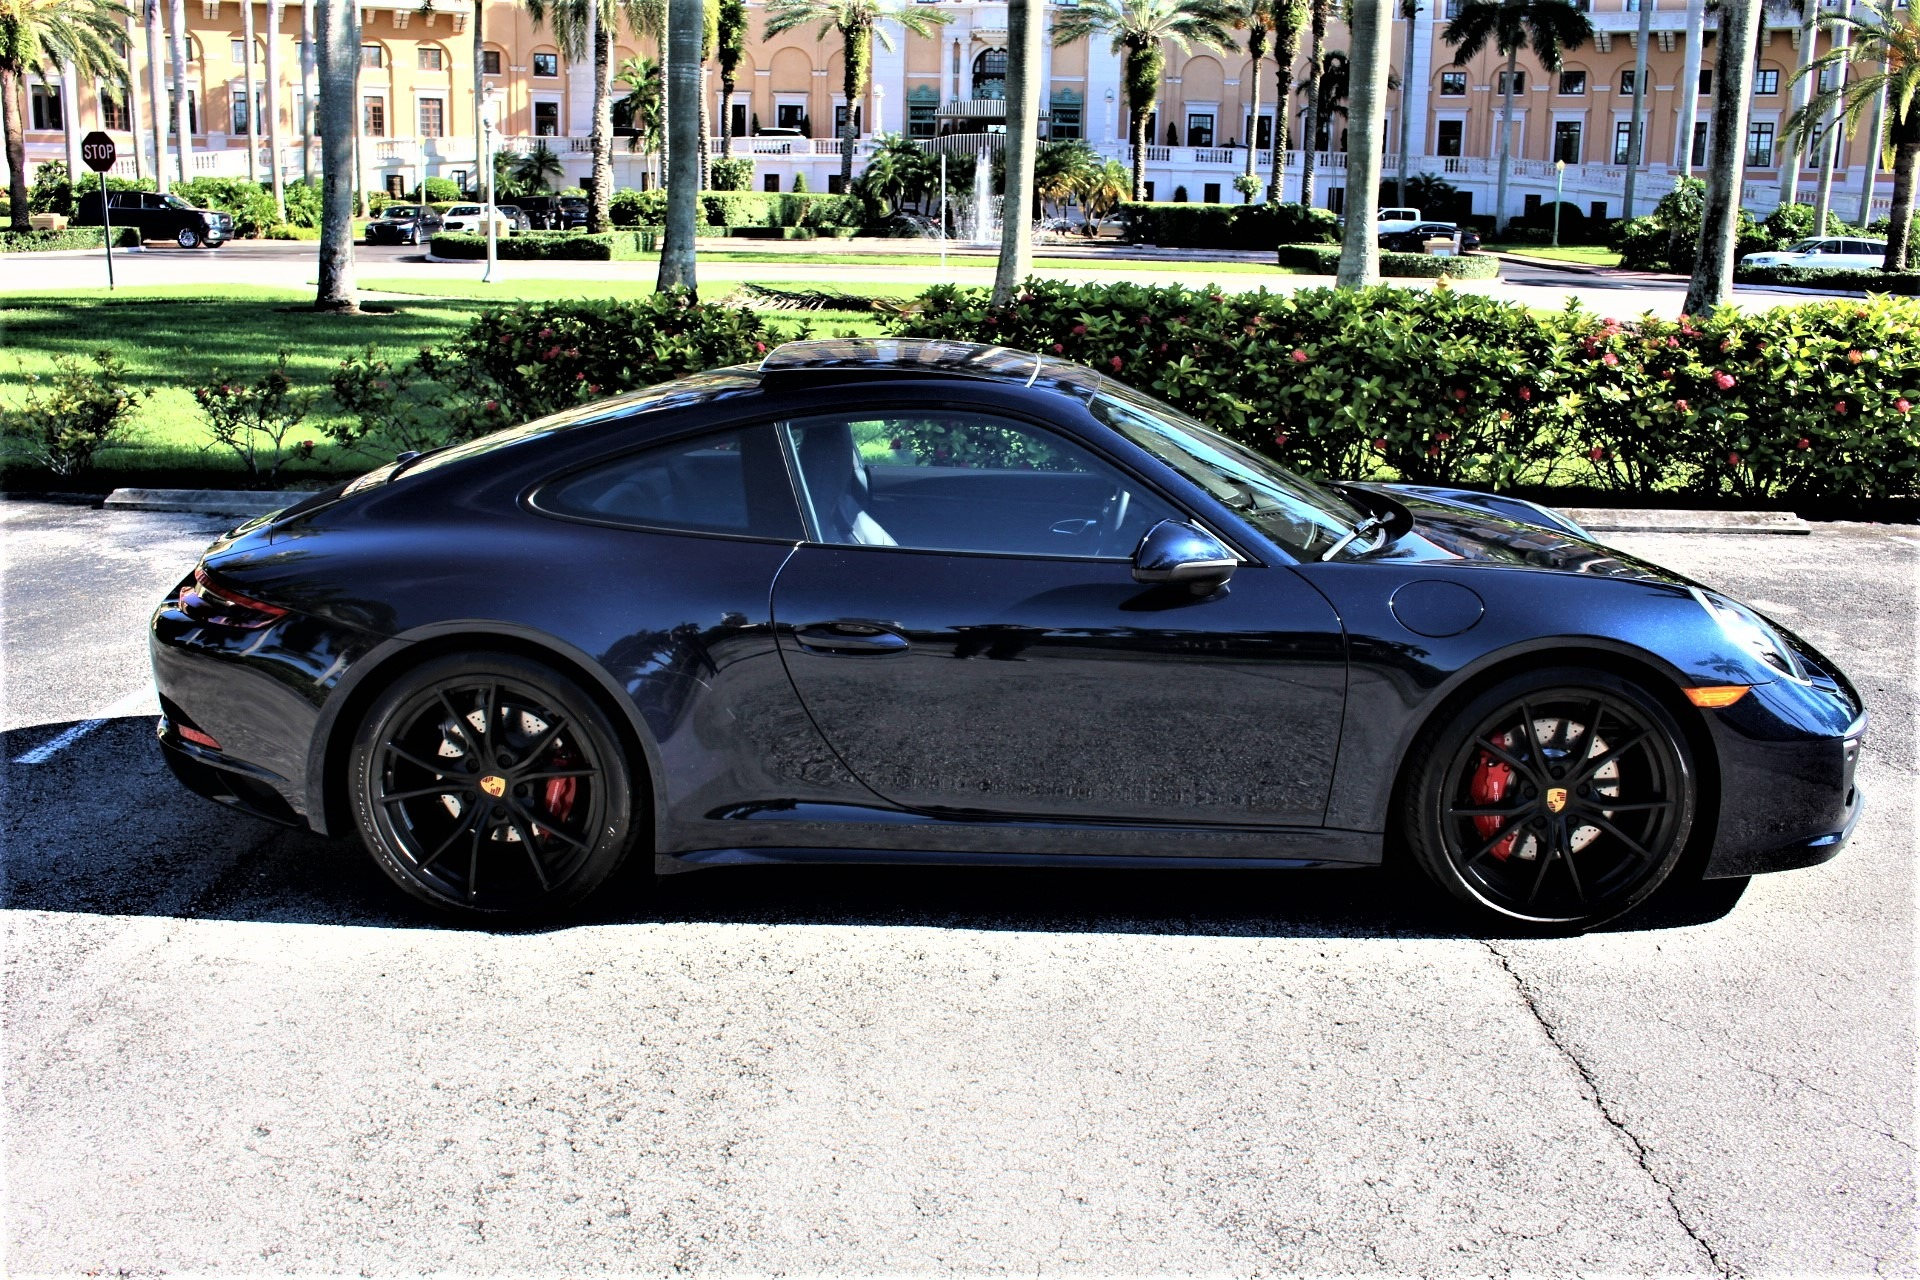 Used 2019 Porsche 911 Carrera GTS for sale Sold at The Gables Sports Cars in Miami FL 33146 2